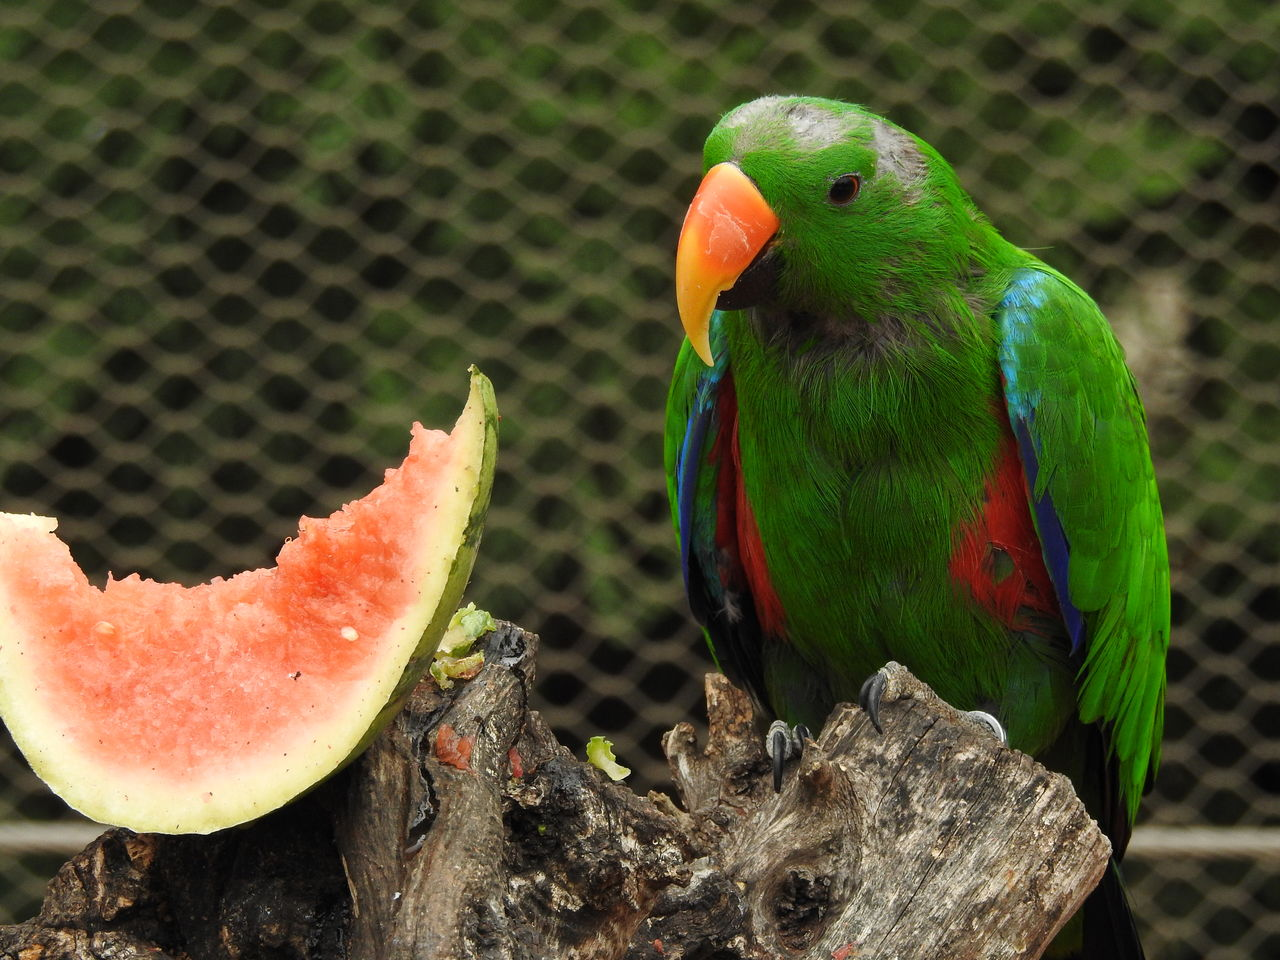 vertebrate, animal, animal wildlife, animal themes, animals in the wild, parrot, bird, one animal, no people, close-up, perching, focus on foreground, day, green color, nature, multi colored, animals in captivity, cage, outdoors, fruit